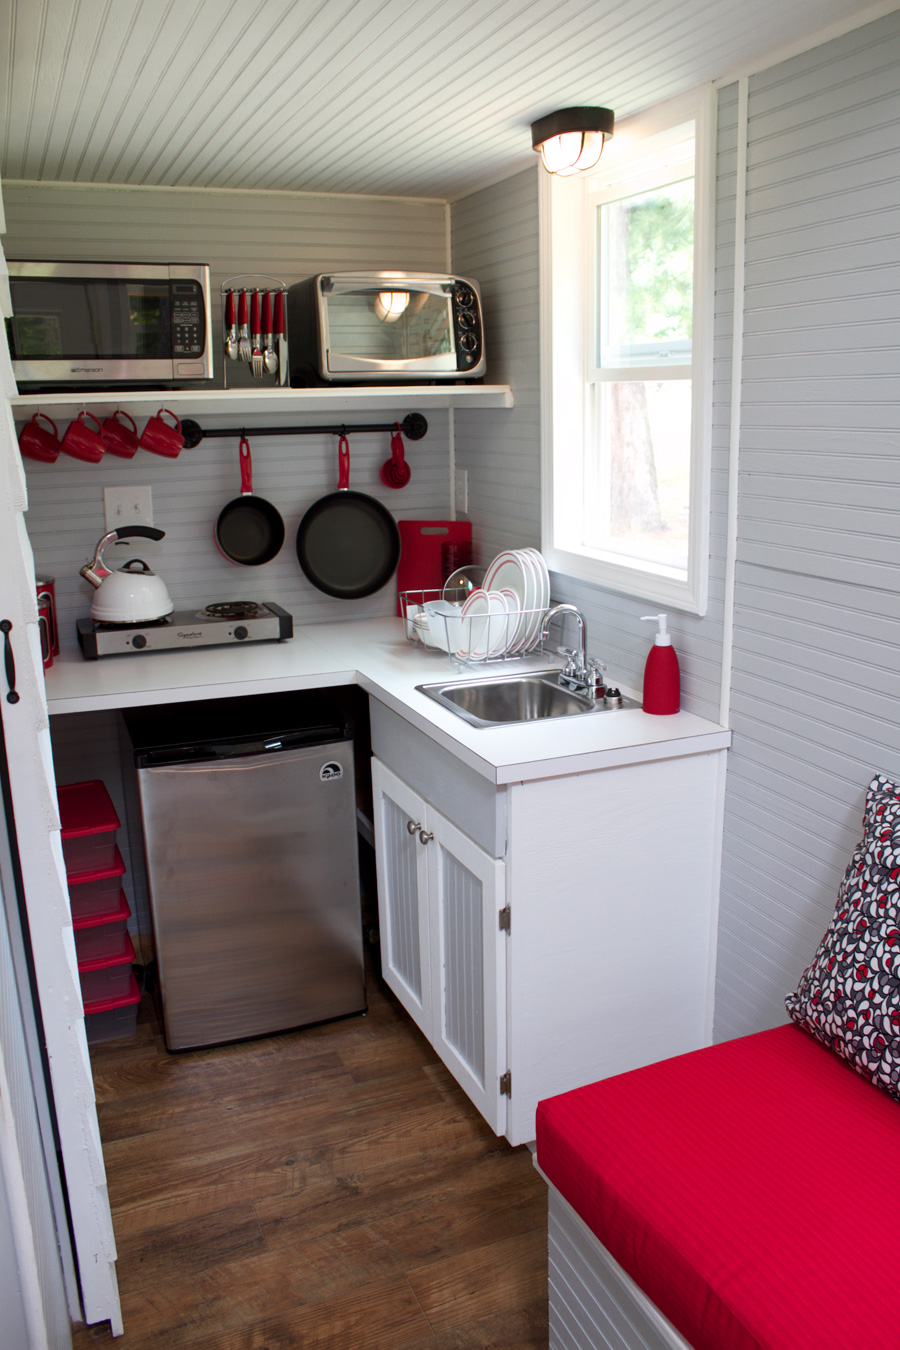 10-reed-tiny-house-kitchen.jpg